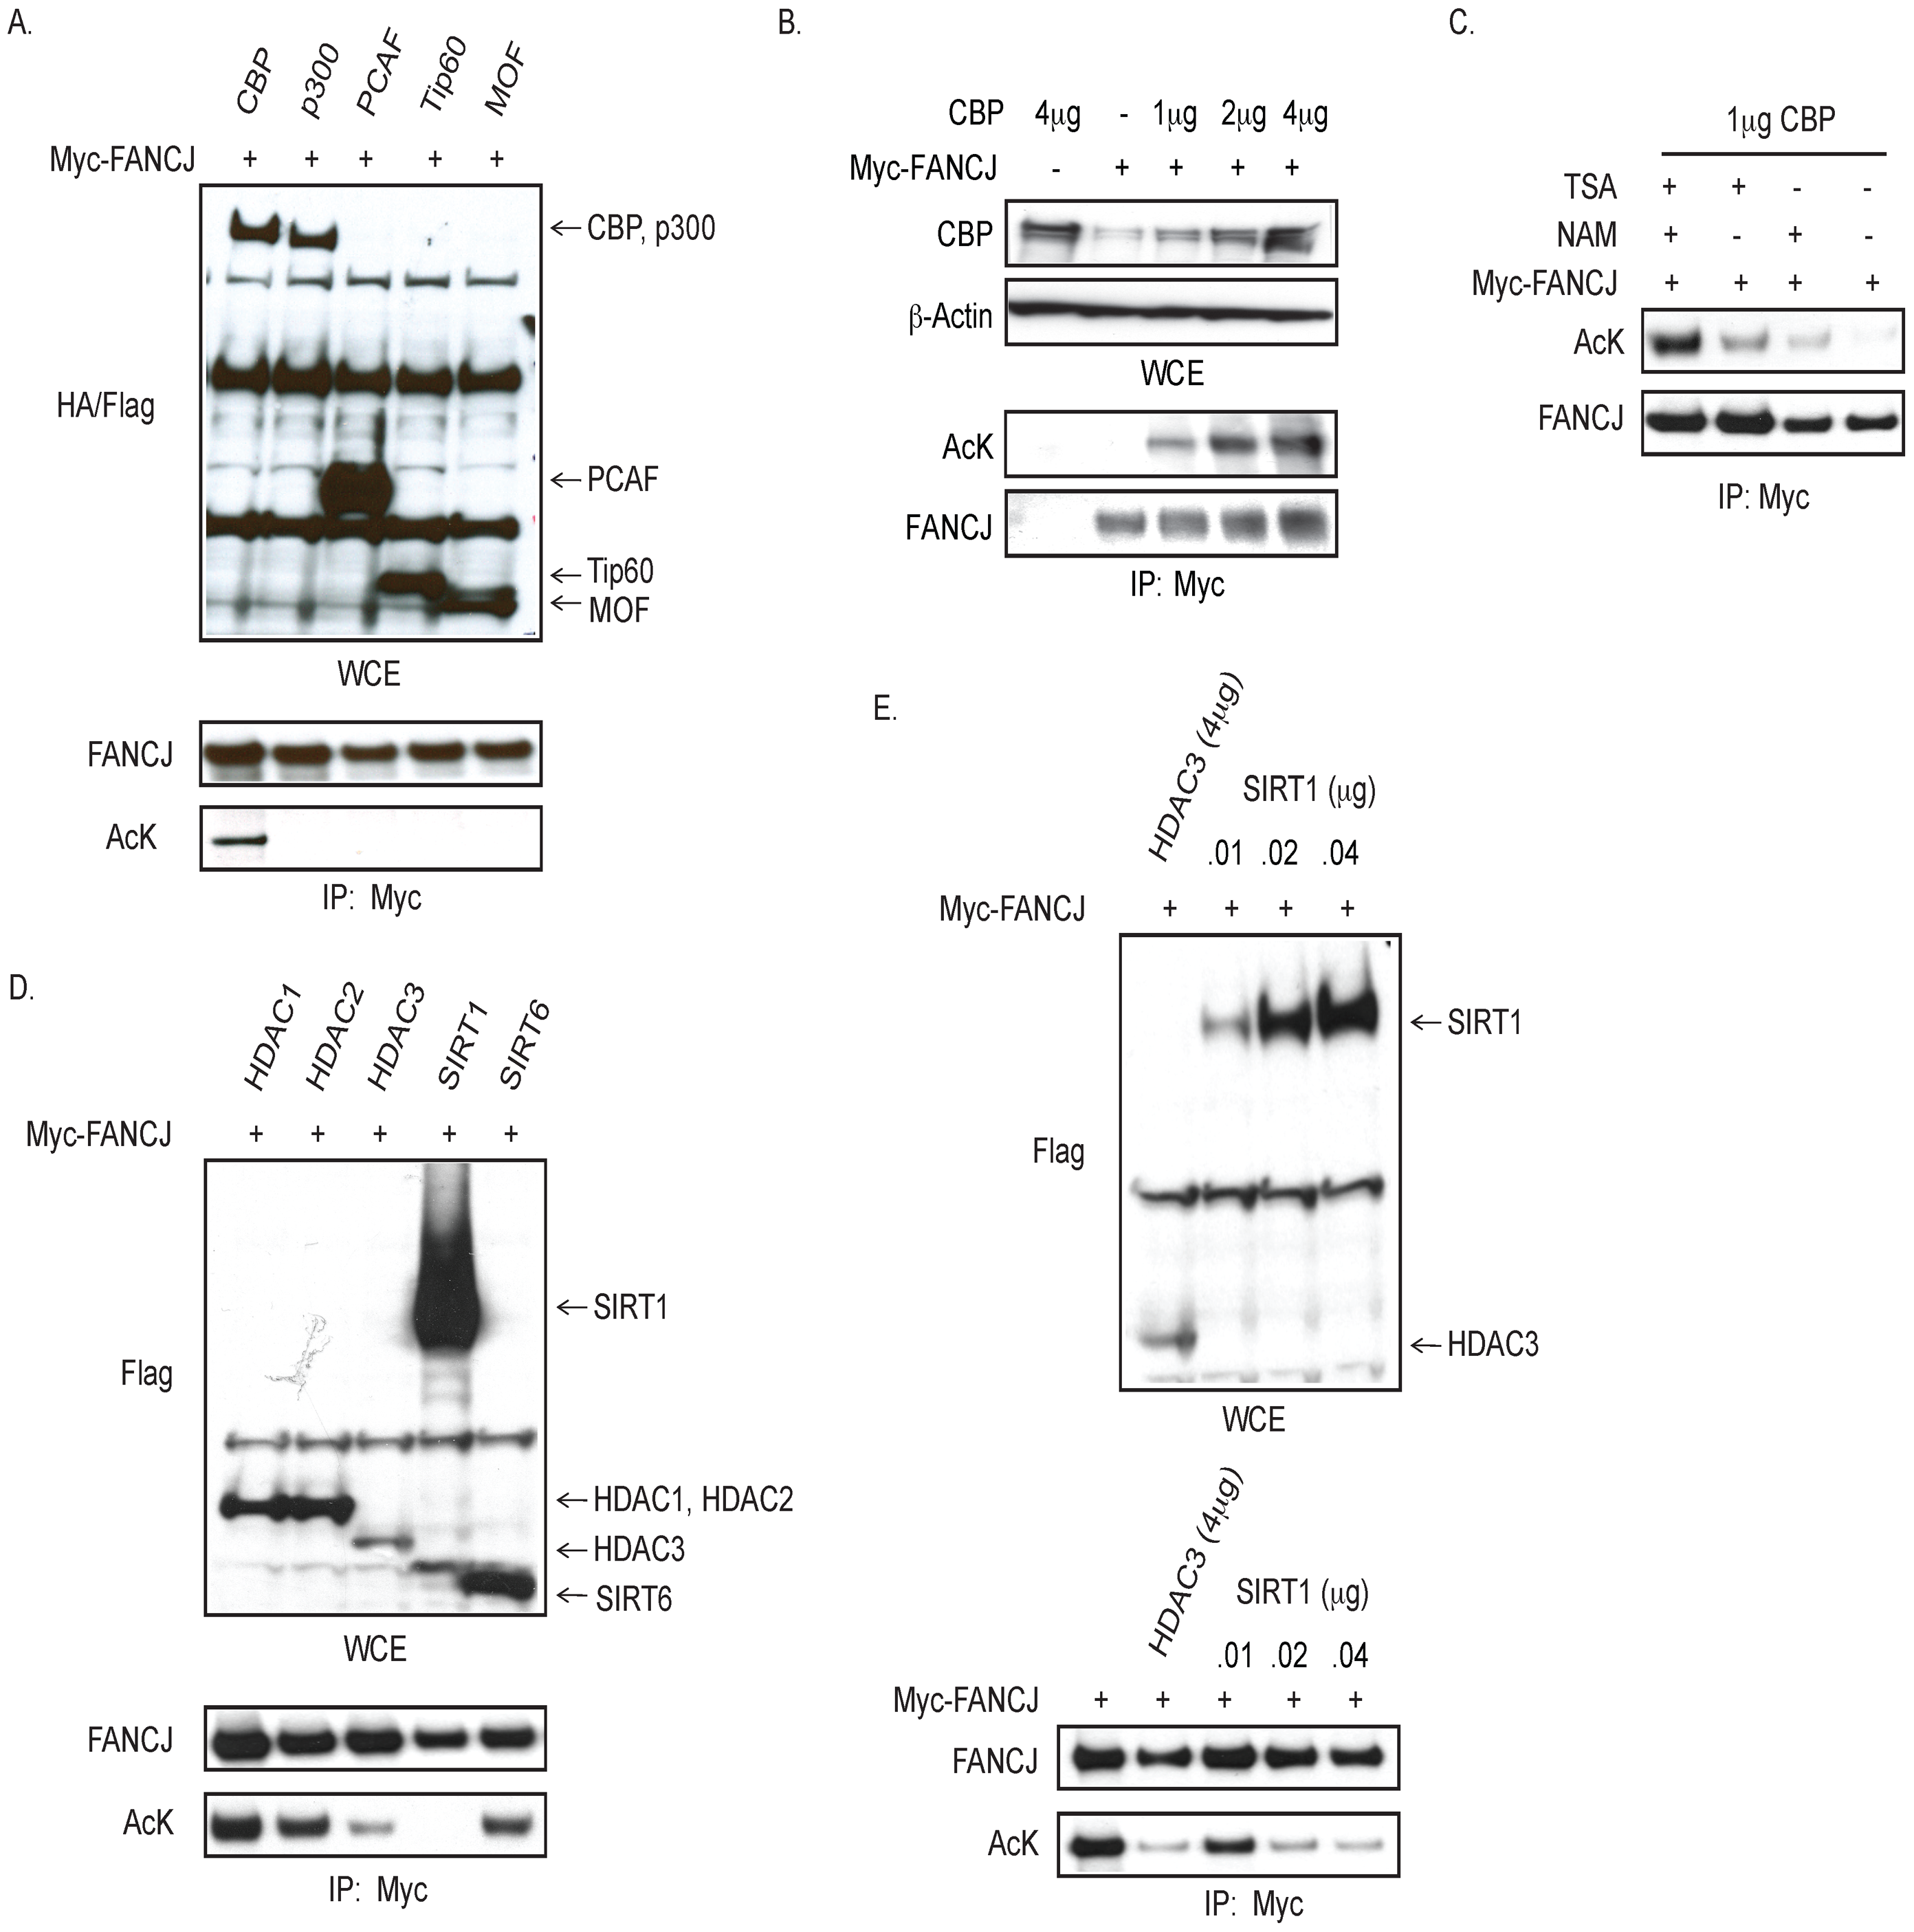 CBP promotes, and HDAC3 and SIRT1 reduce, FANCJ acetylation.